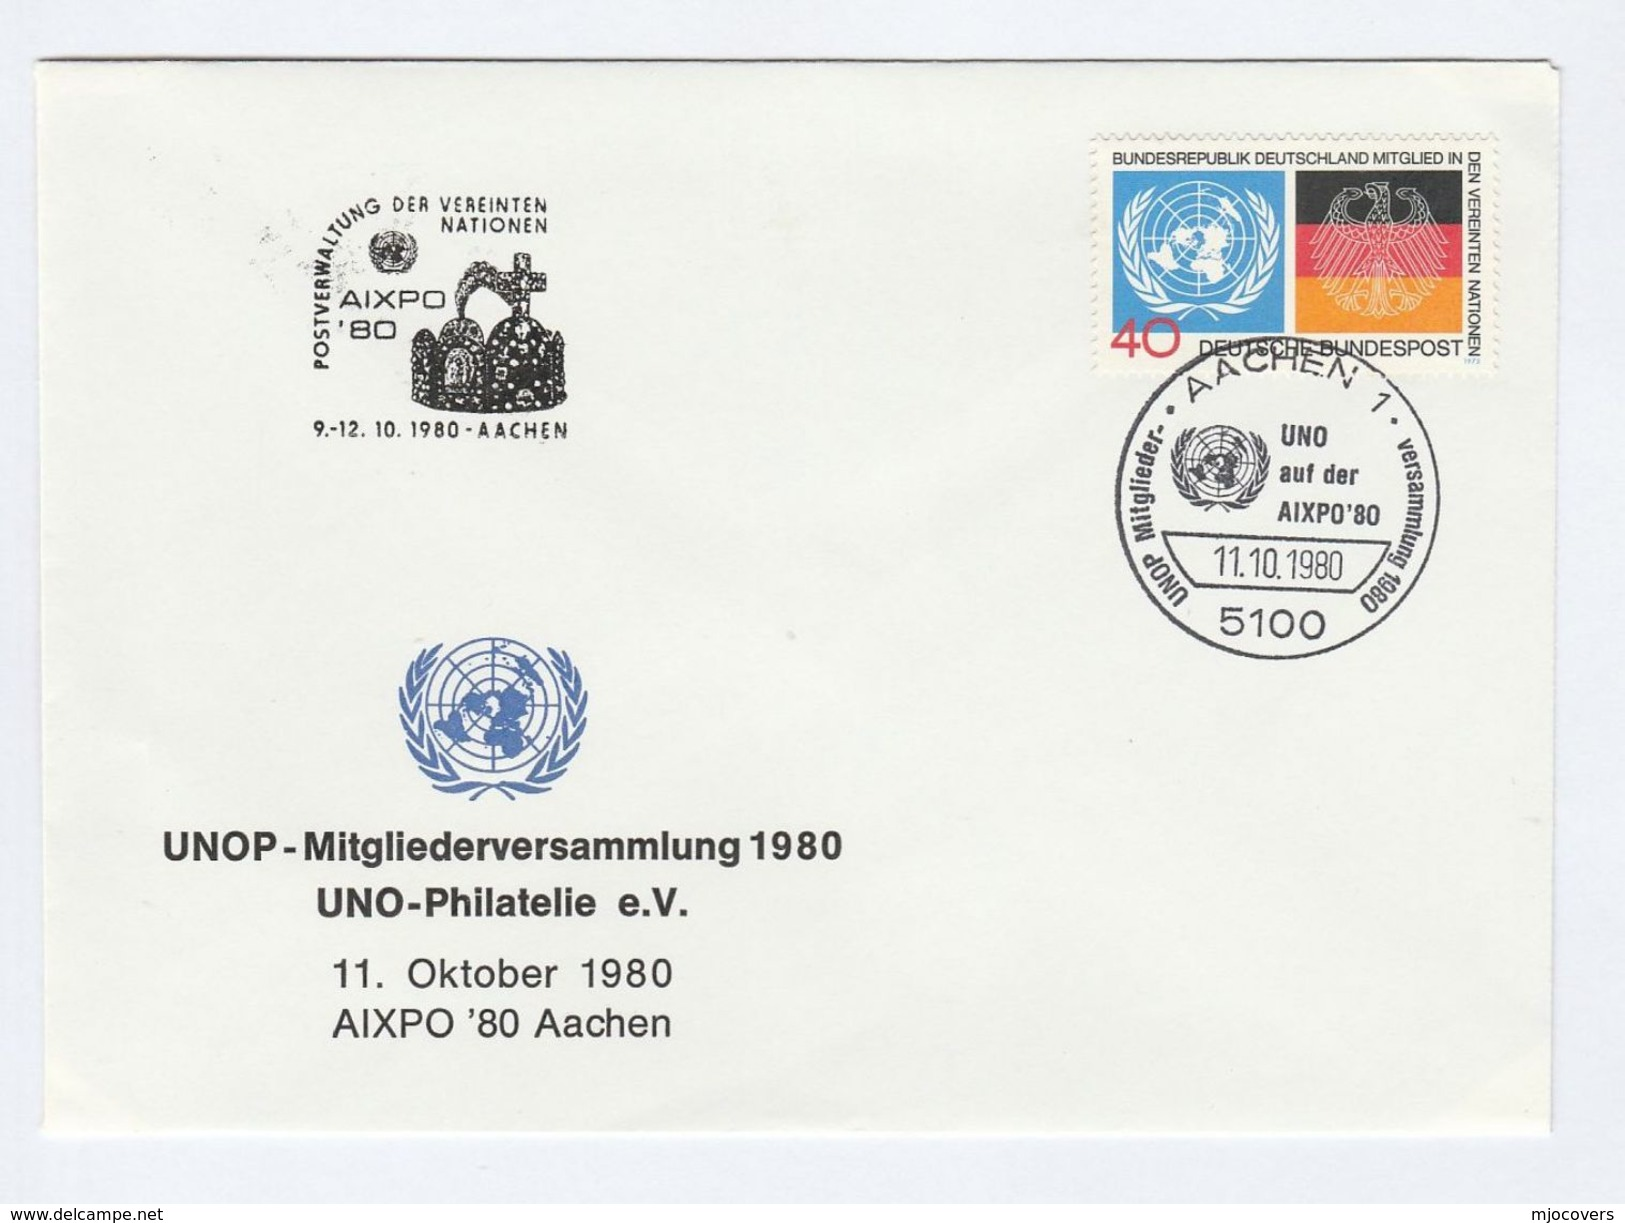 1980 Aachen GERMANY Un UNITED NATIONS EVENT COVER Stamps - UNO